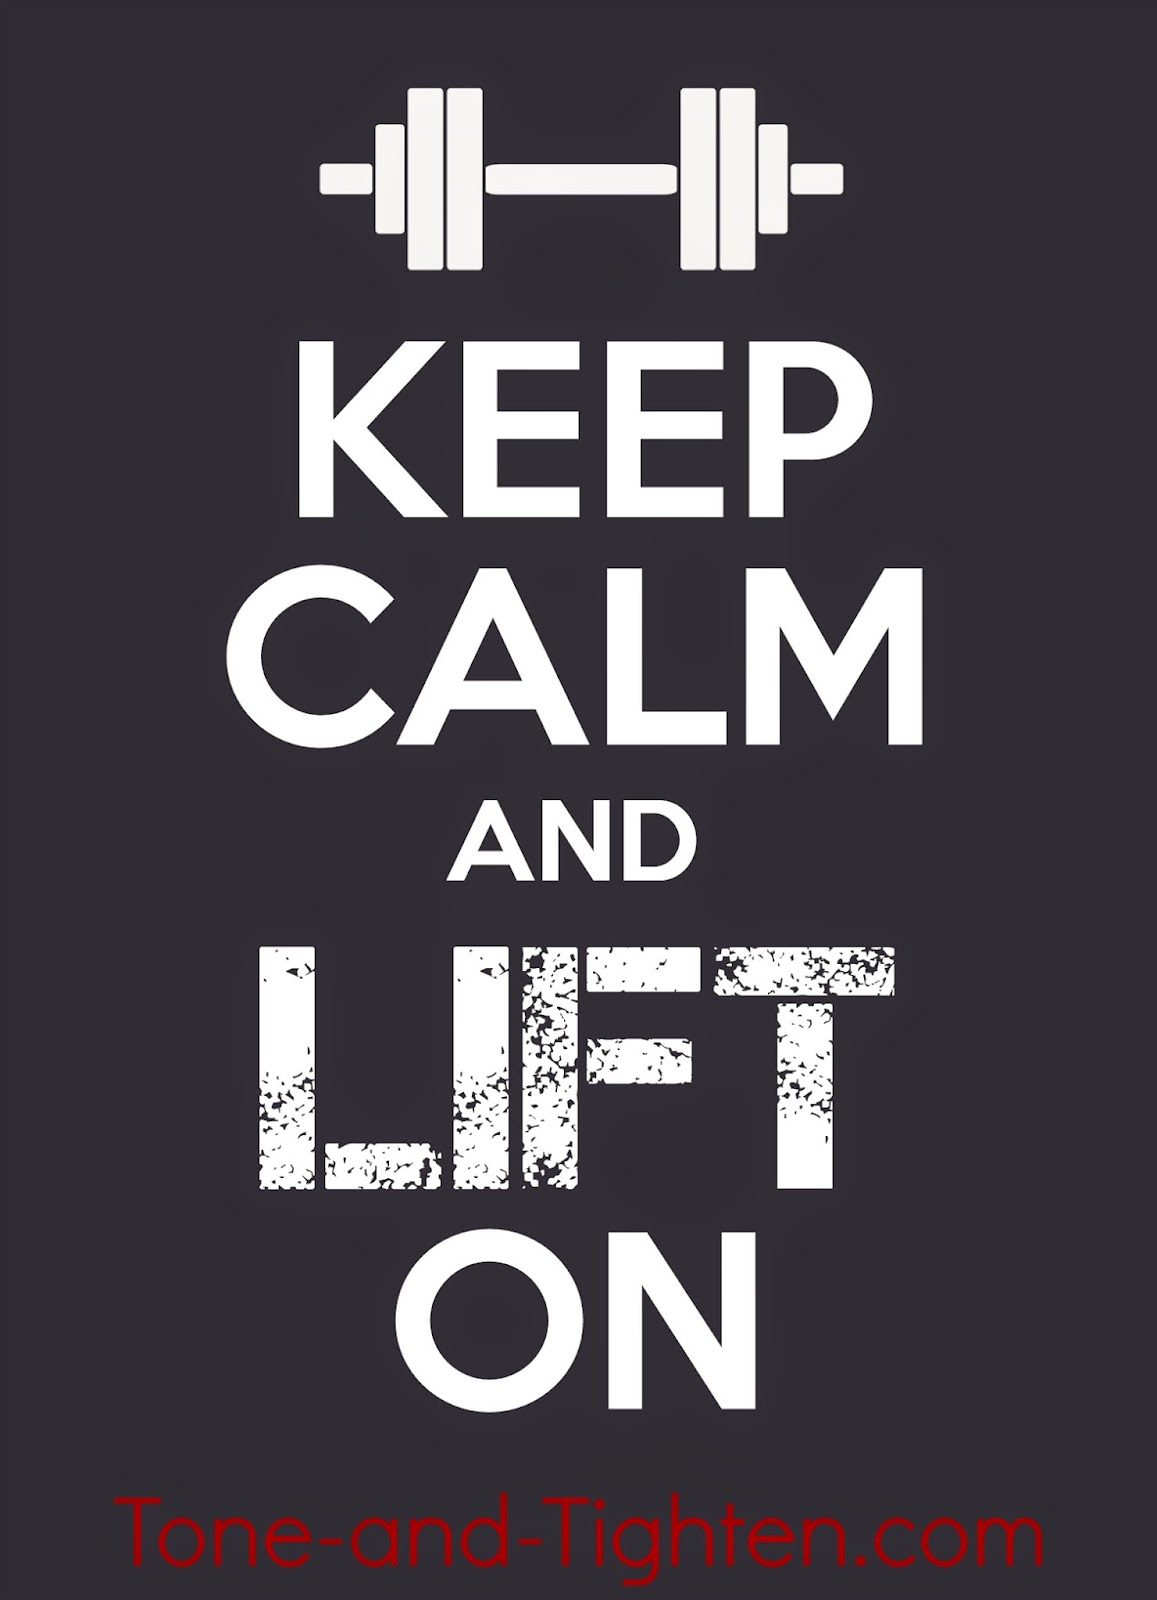 Fitness Motivation – Keep Calm and Lift On Poster – What's Your Passion? | Tone and Tighten